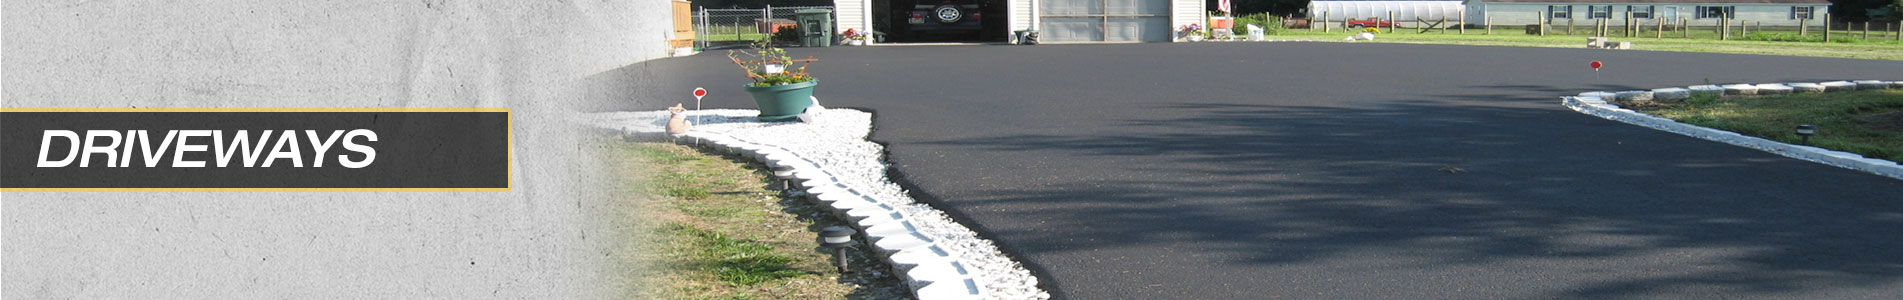 Header Driveways - Driveways